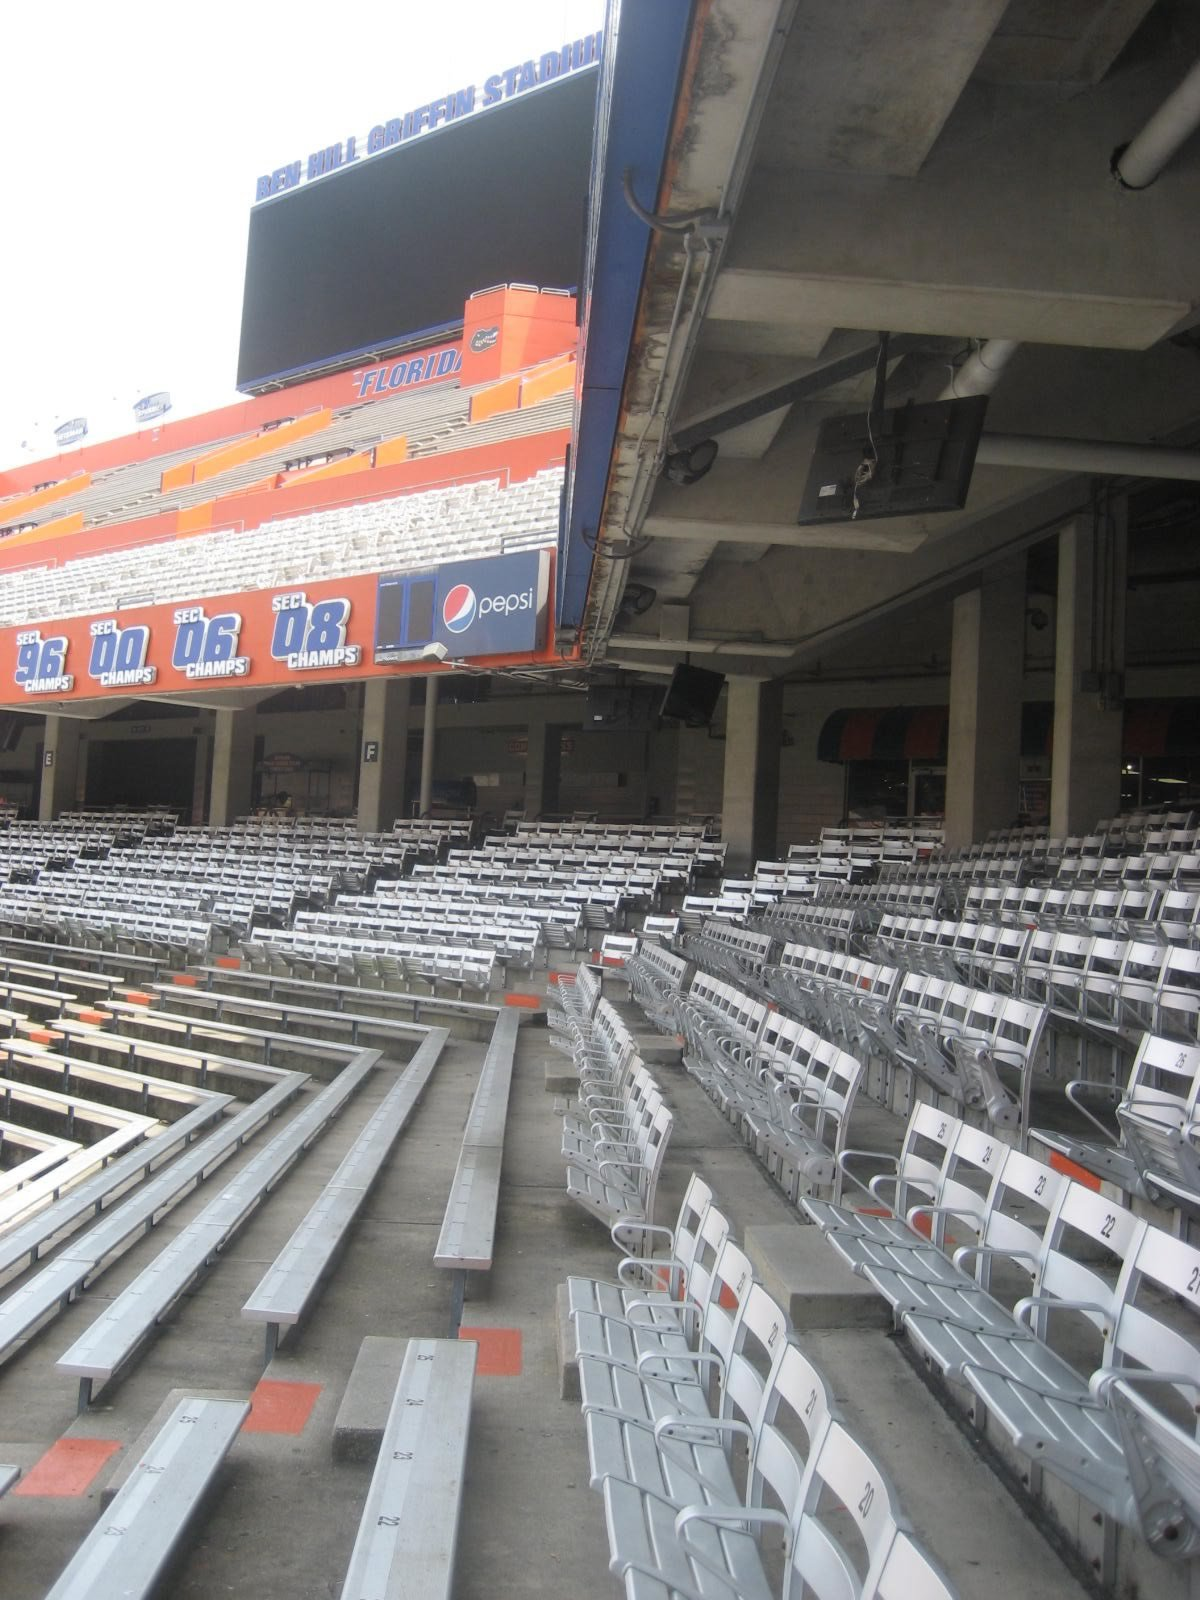 Most Chairback Seats In Sections A H Are Also Under Cover This Photo From Section Shows That The First Row Of Stadium Chairs Is Only Partially Covered